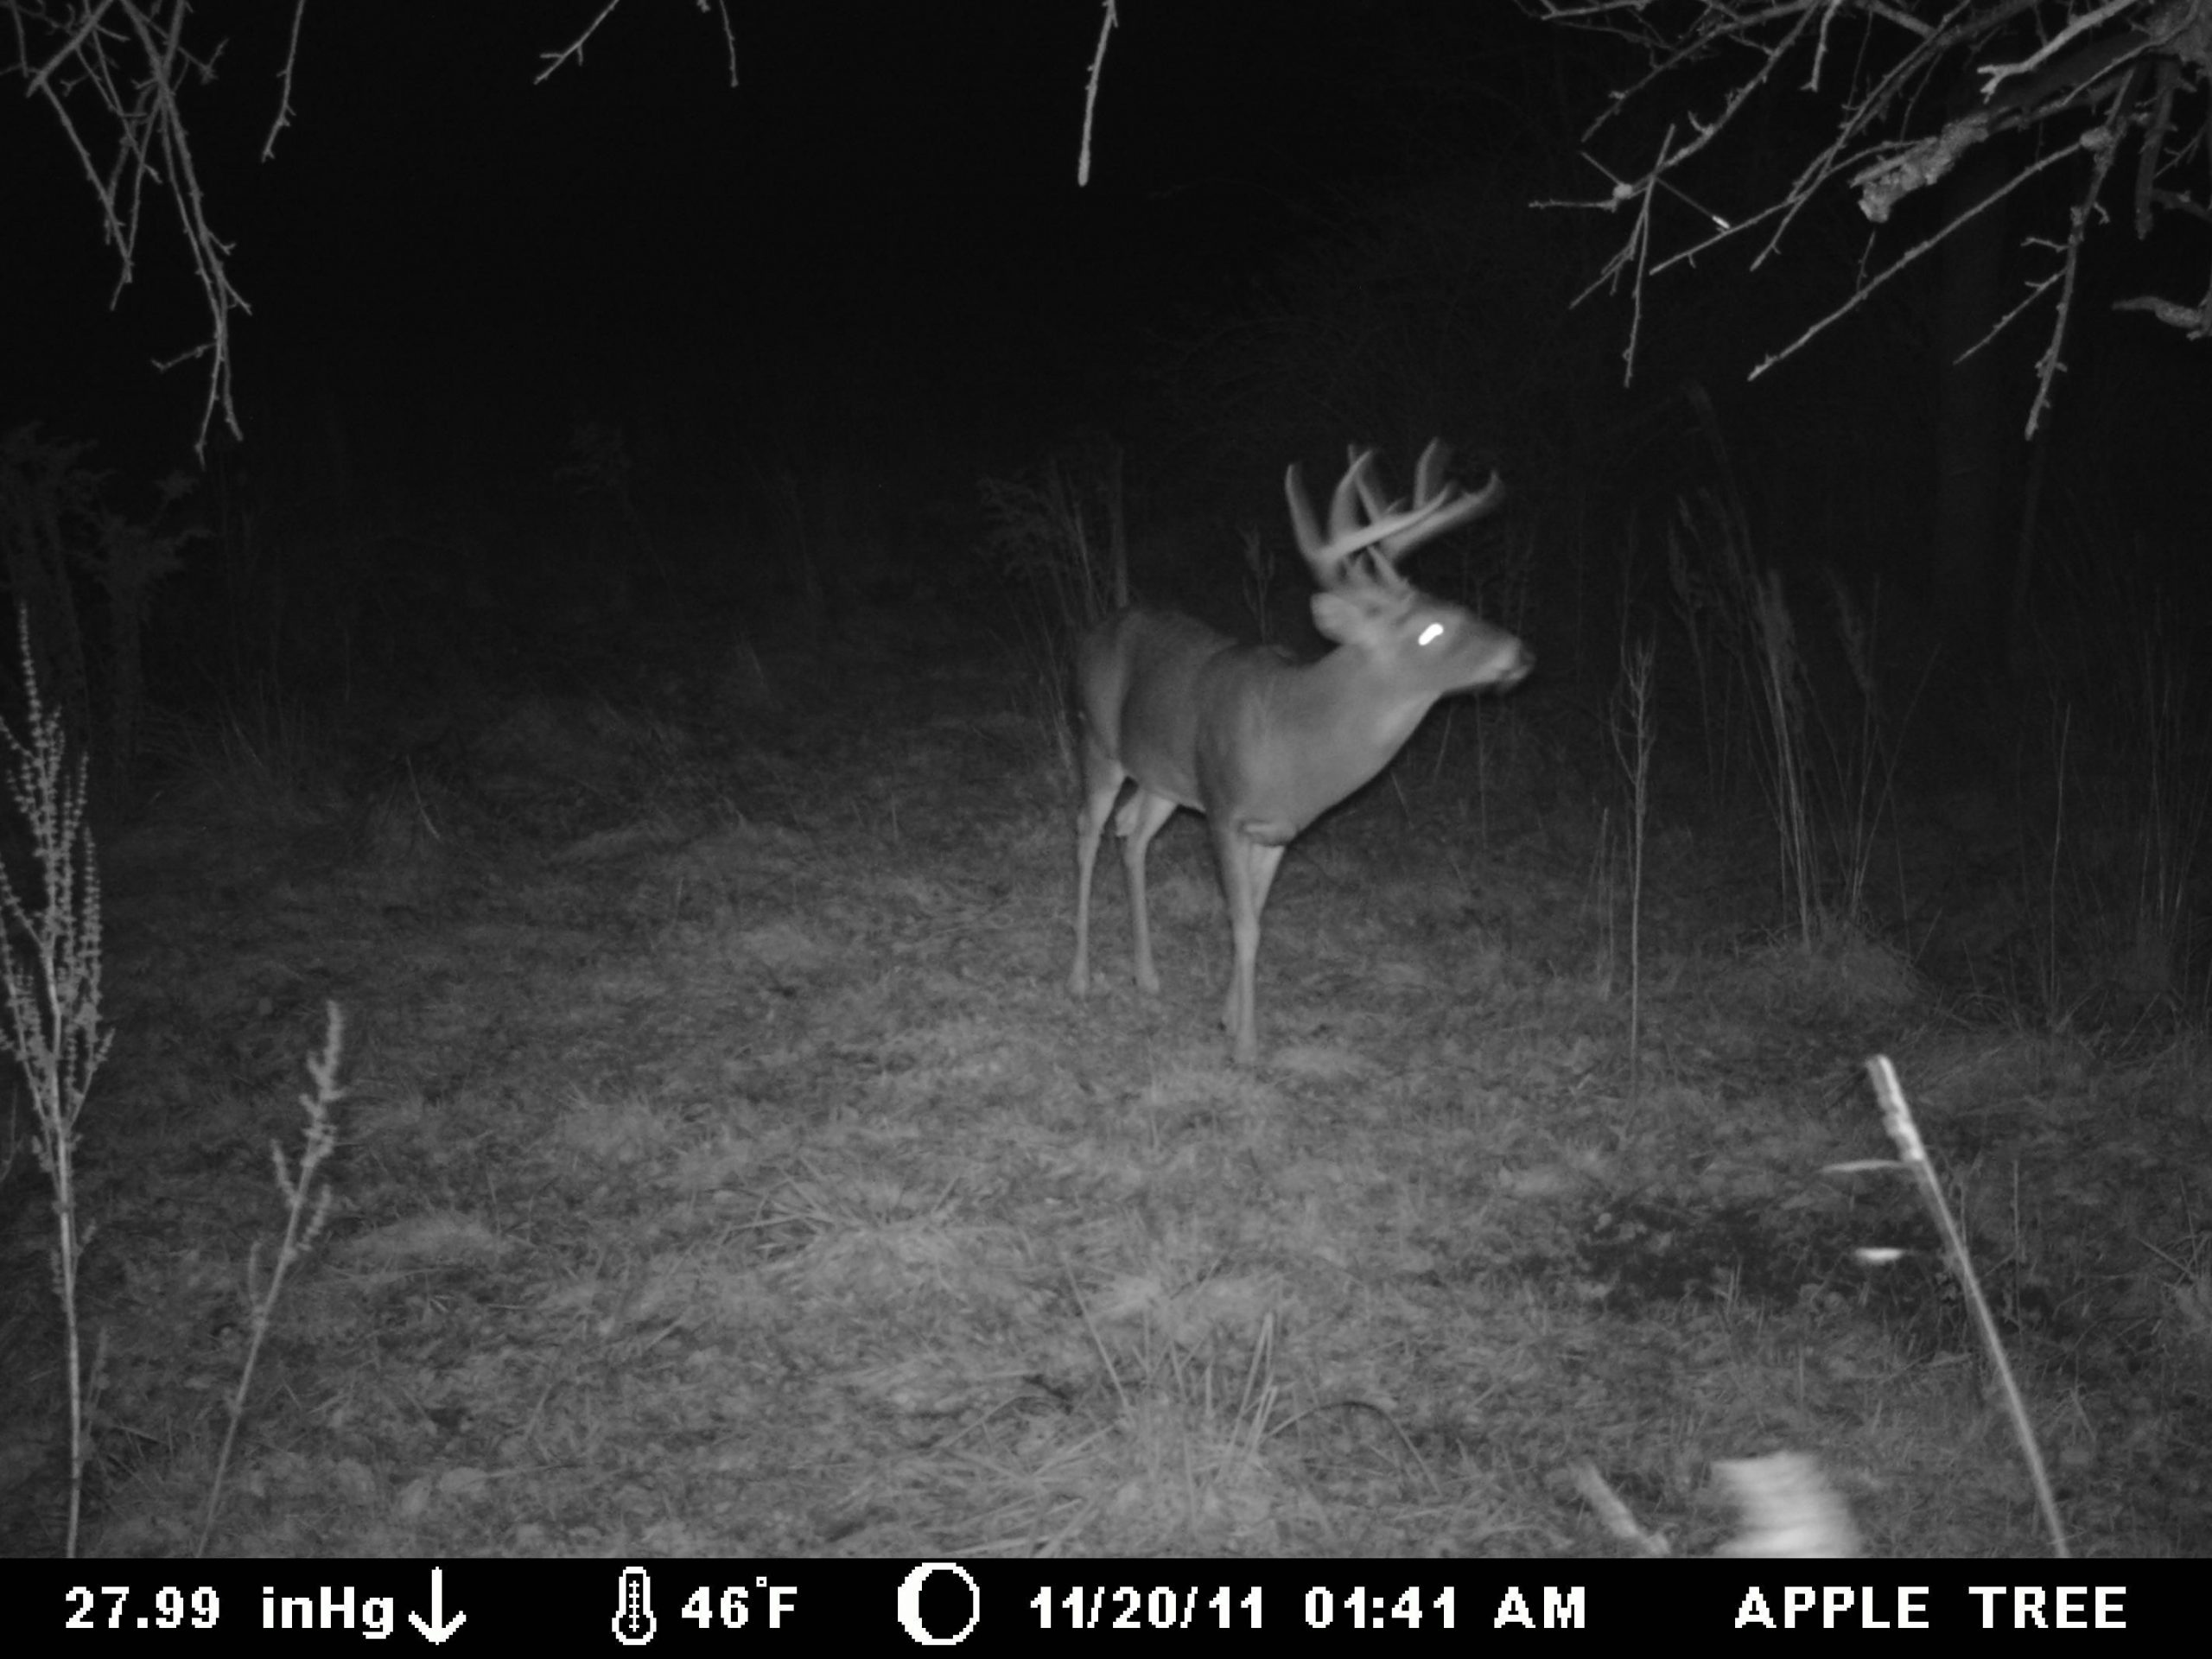 2012 Whitetail Rut To Peak In Early November - News - The Wellsville Daily Reporter - Wellsville, Ny-2021 Nys White Tail Rut